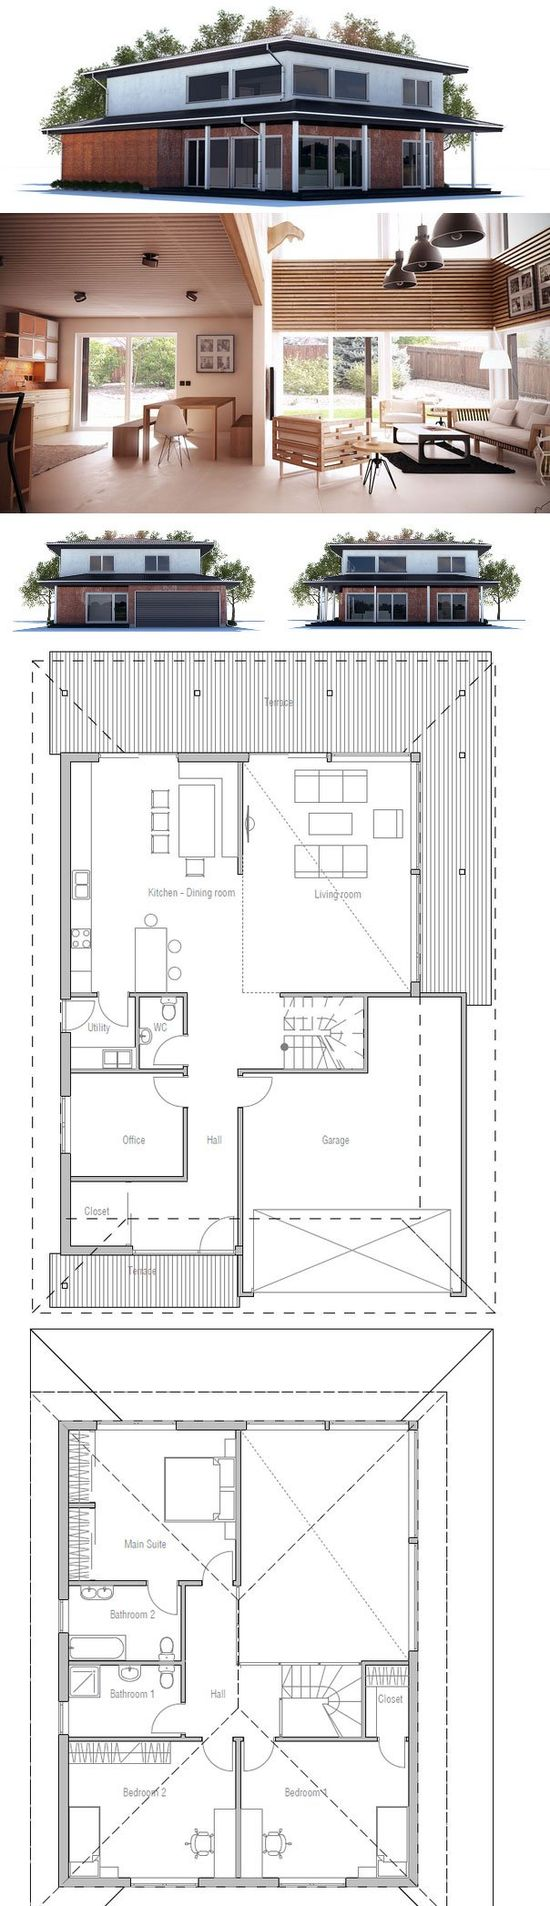 Modern Home Design, Floor plan from ConceptHome.com